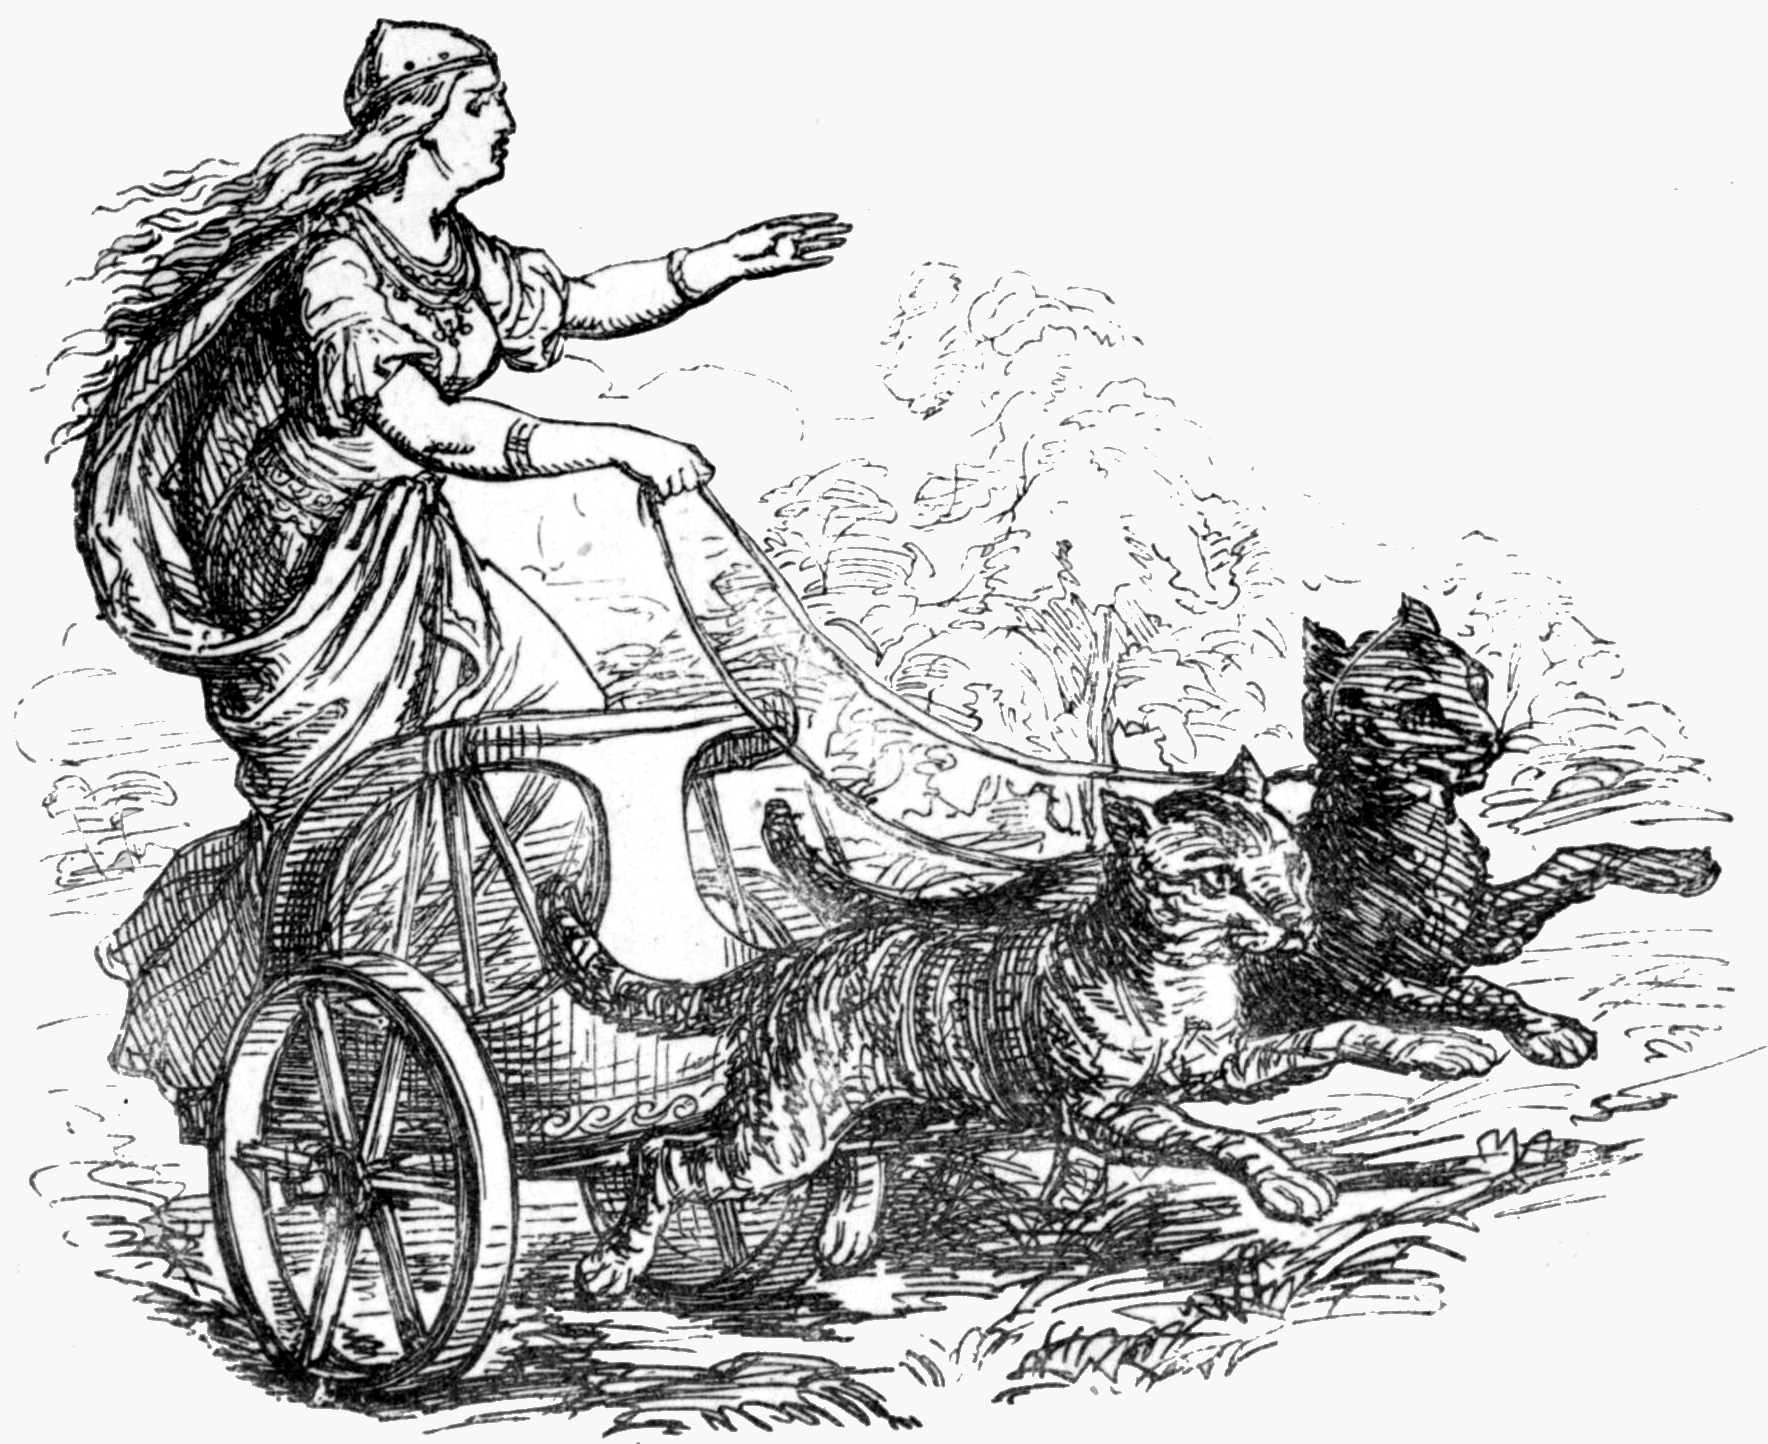 https://upload.wikimedia.org/wikipedia/commons/4/48/Freyja_riding_with_her_cats_(1874).jpg